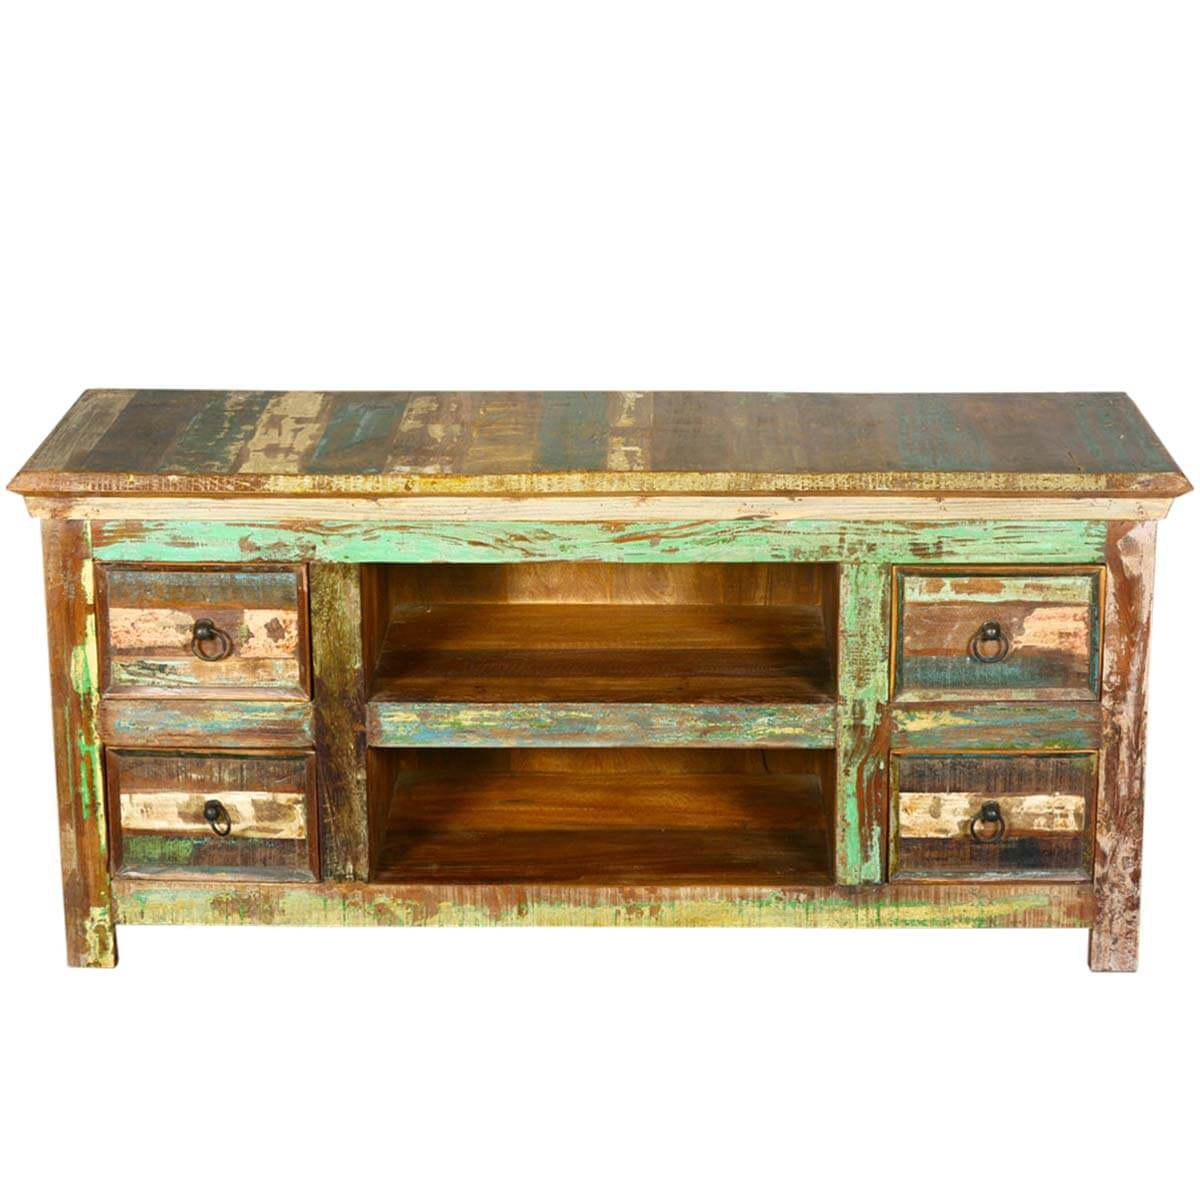 Reclaimed Wood Furniture 4 Drawer Rustic Tv Stand Media